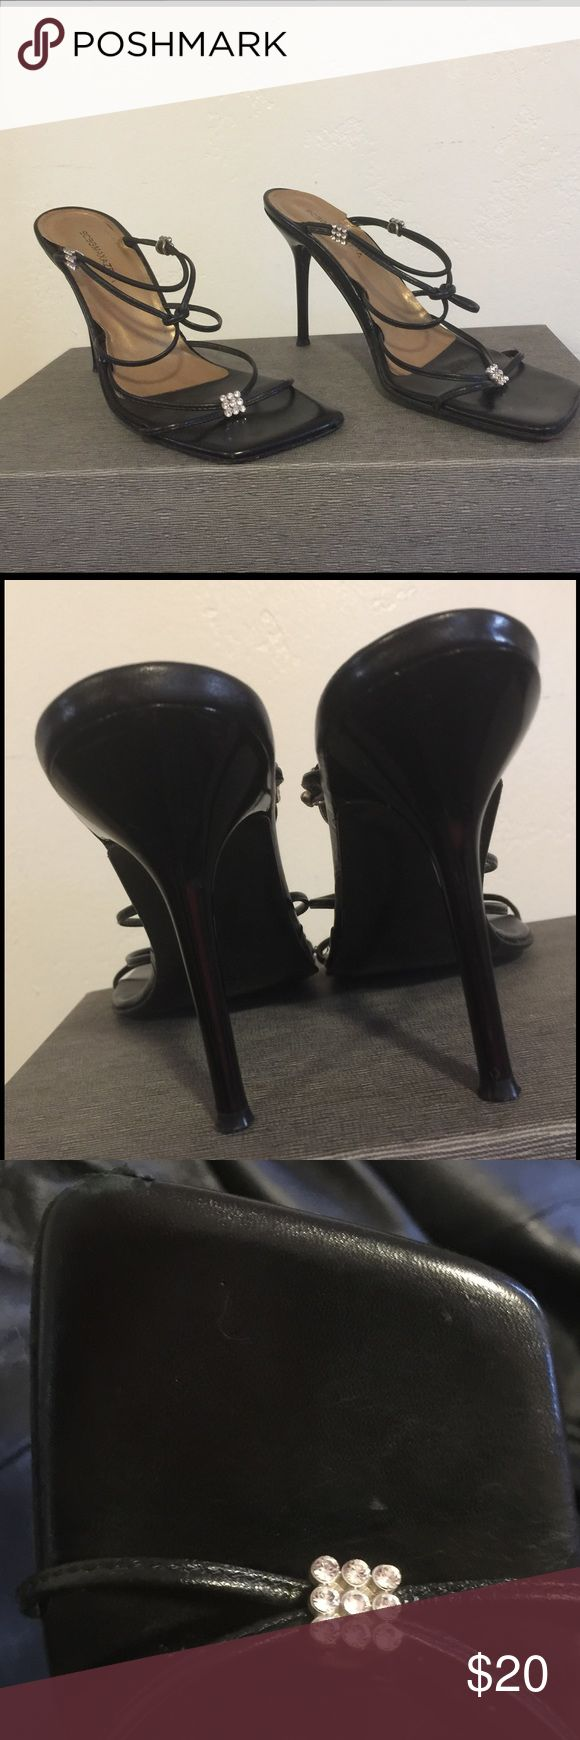 BCBG maxazria shoes Beautiful black strappy shoes. Great for evening or anytime really. Gently used with minor wear on tip of shoe and inside a bit but very minor. The heels are in great shape. BCBGMaxAzria Shoes Sandals